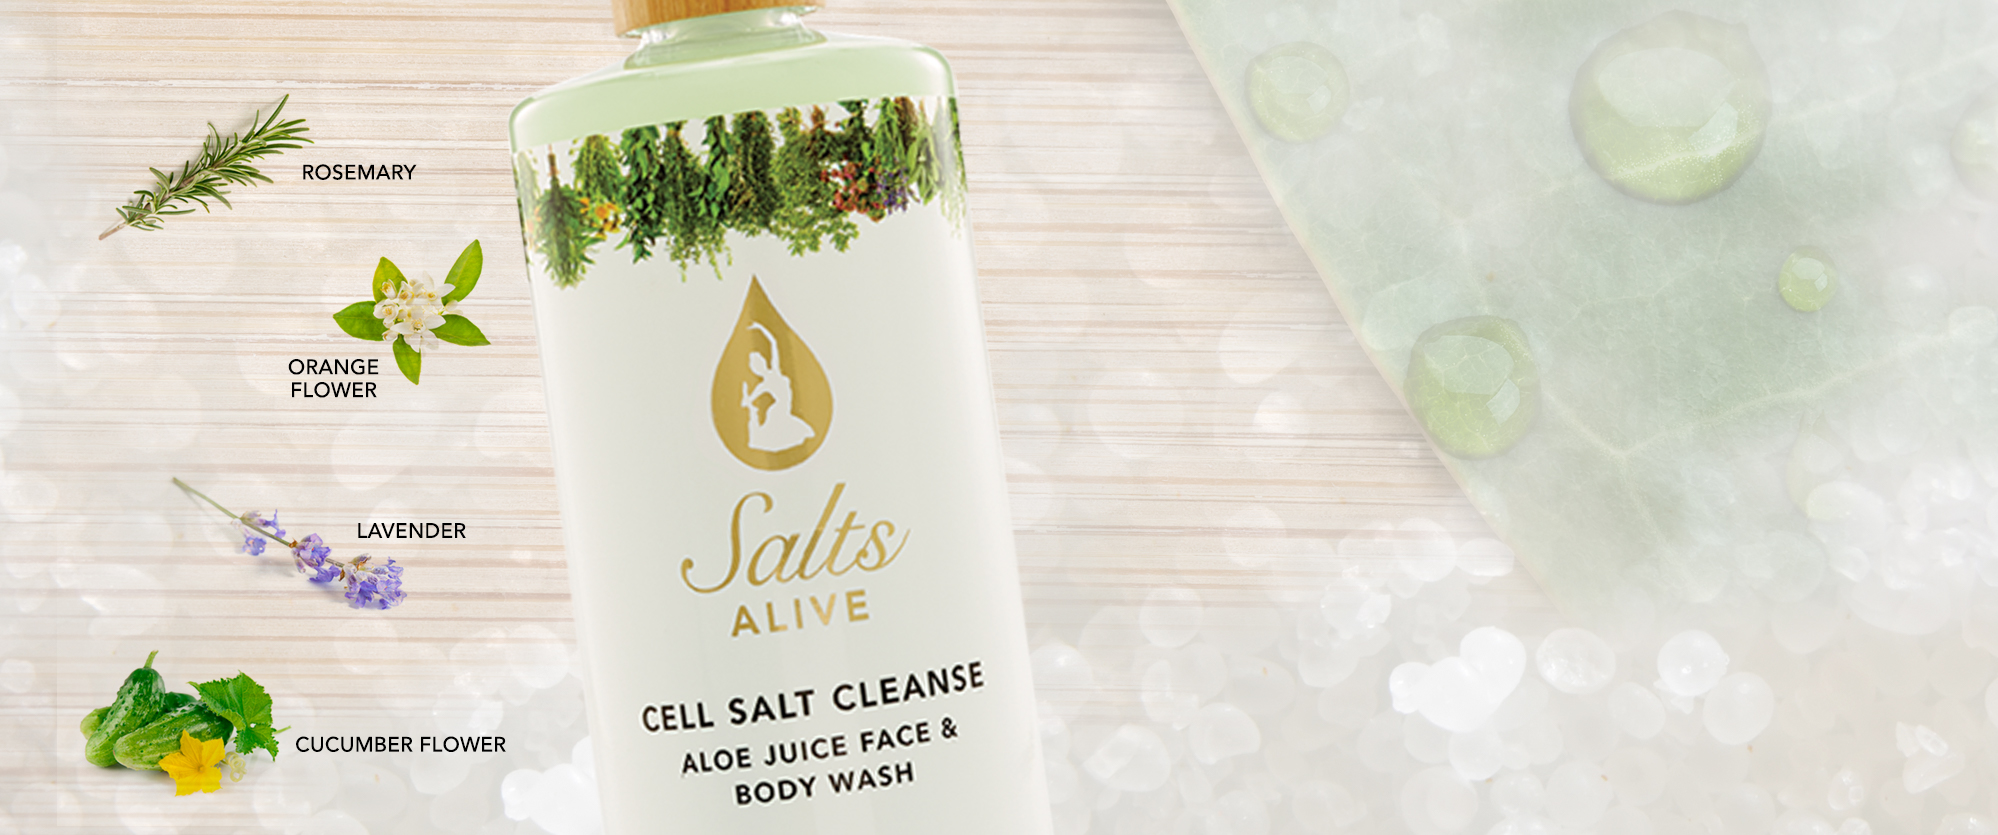 Cell Salt Cleanse Header